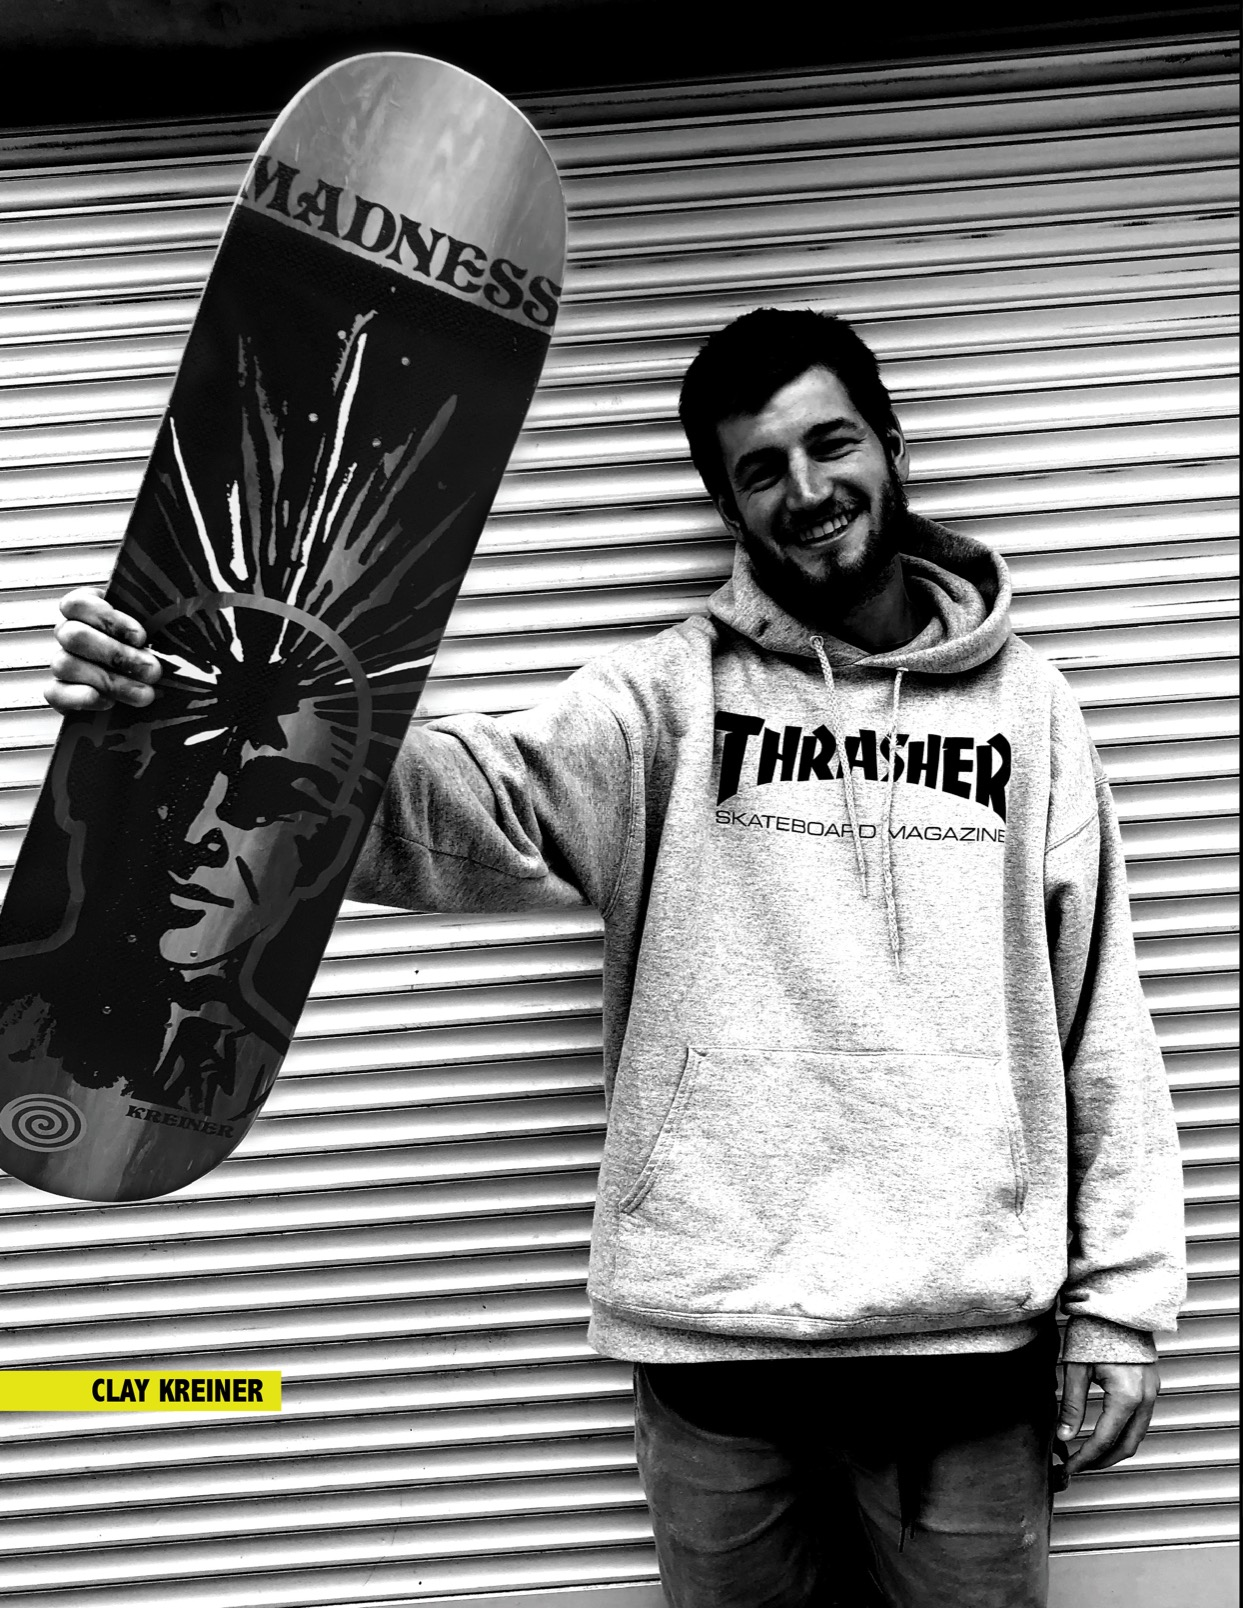 Madness_Skateboards_Clay_Kreiner_Expanded_pro_deck_1.jpg